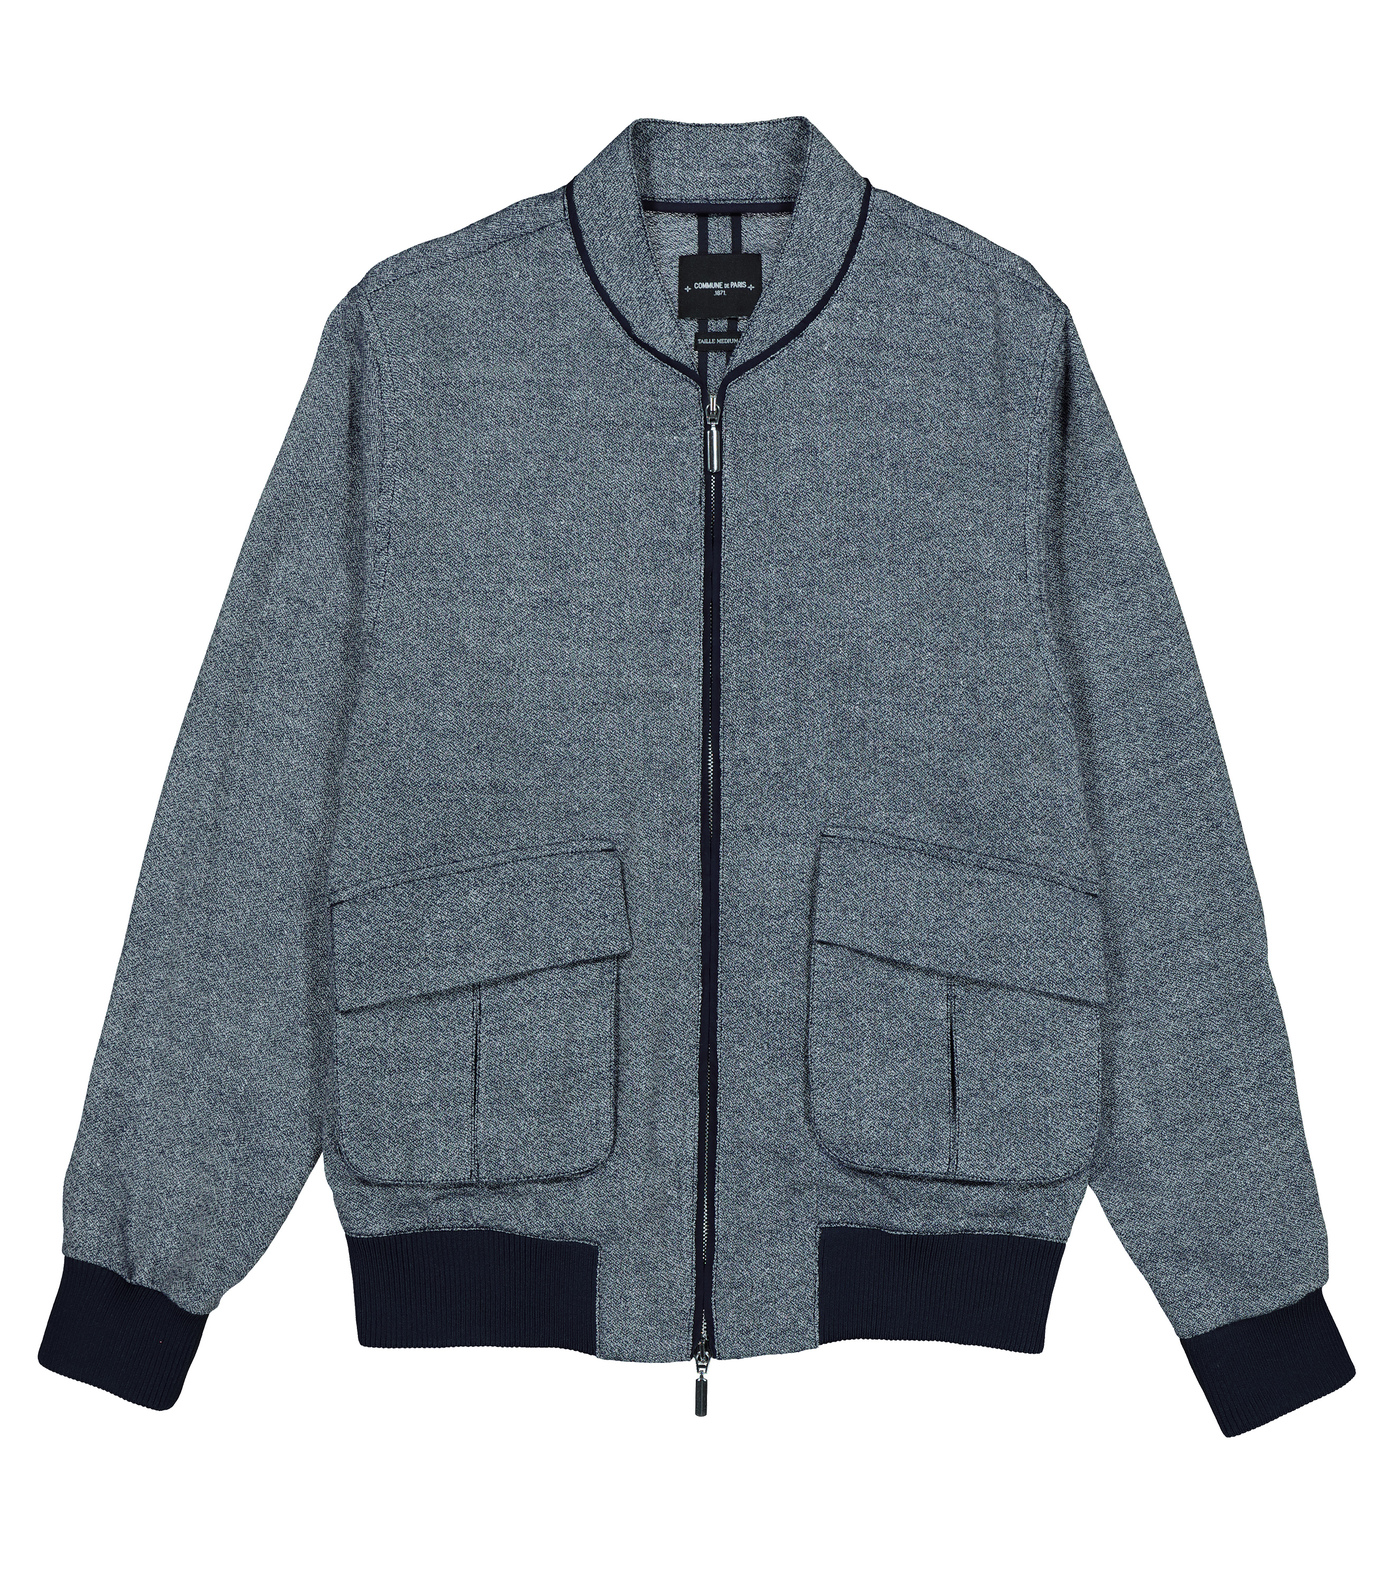 JACKET BASILE  - Marl blue